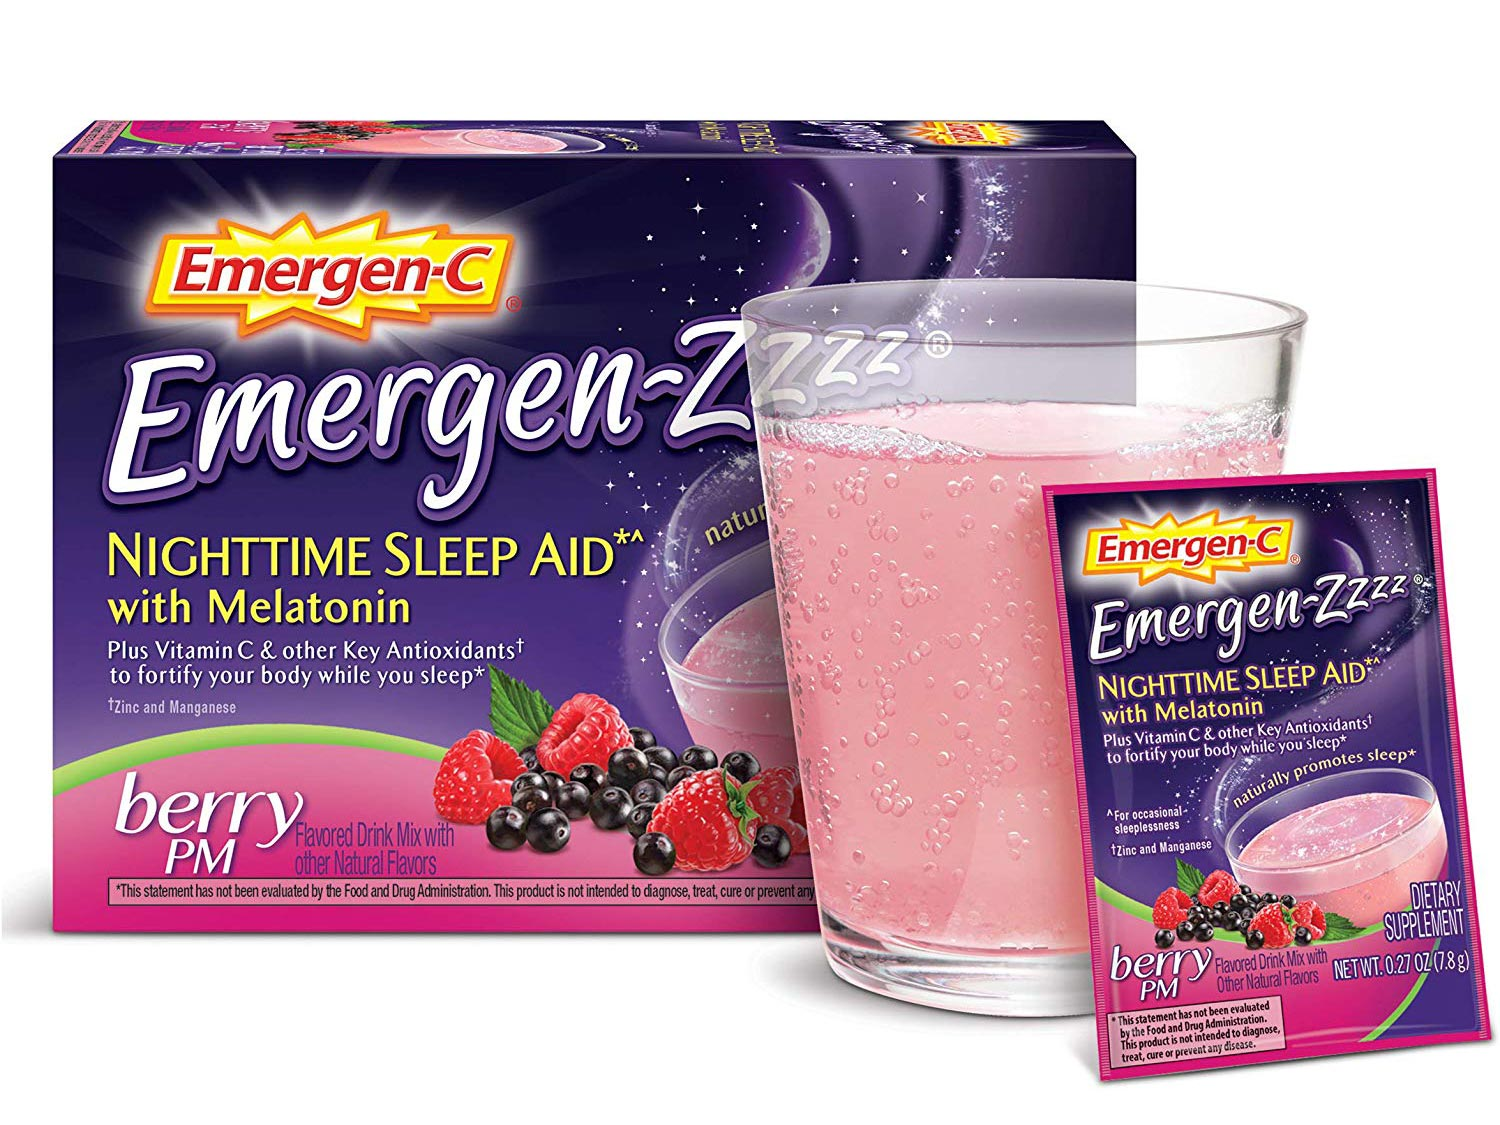 Emergen-Zzzz Nighttime Sleep Aid, With Melatonin And Vitamin C 500mg (48 Count, Berry PM Flavor)